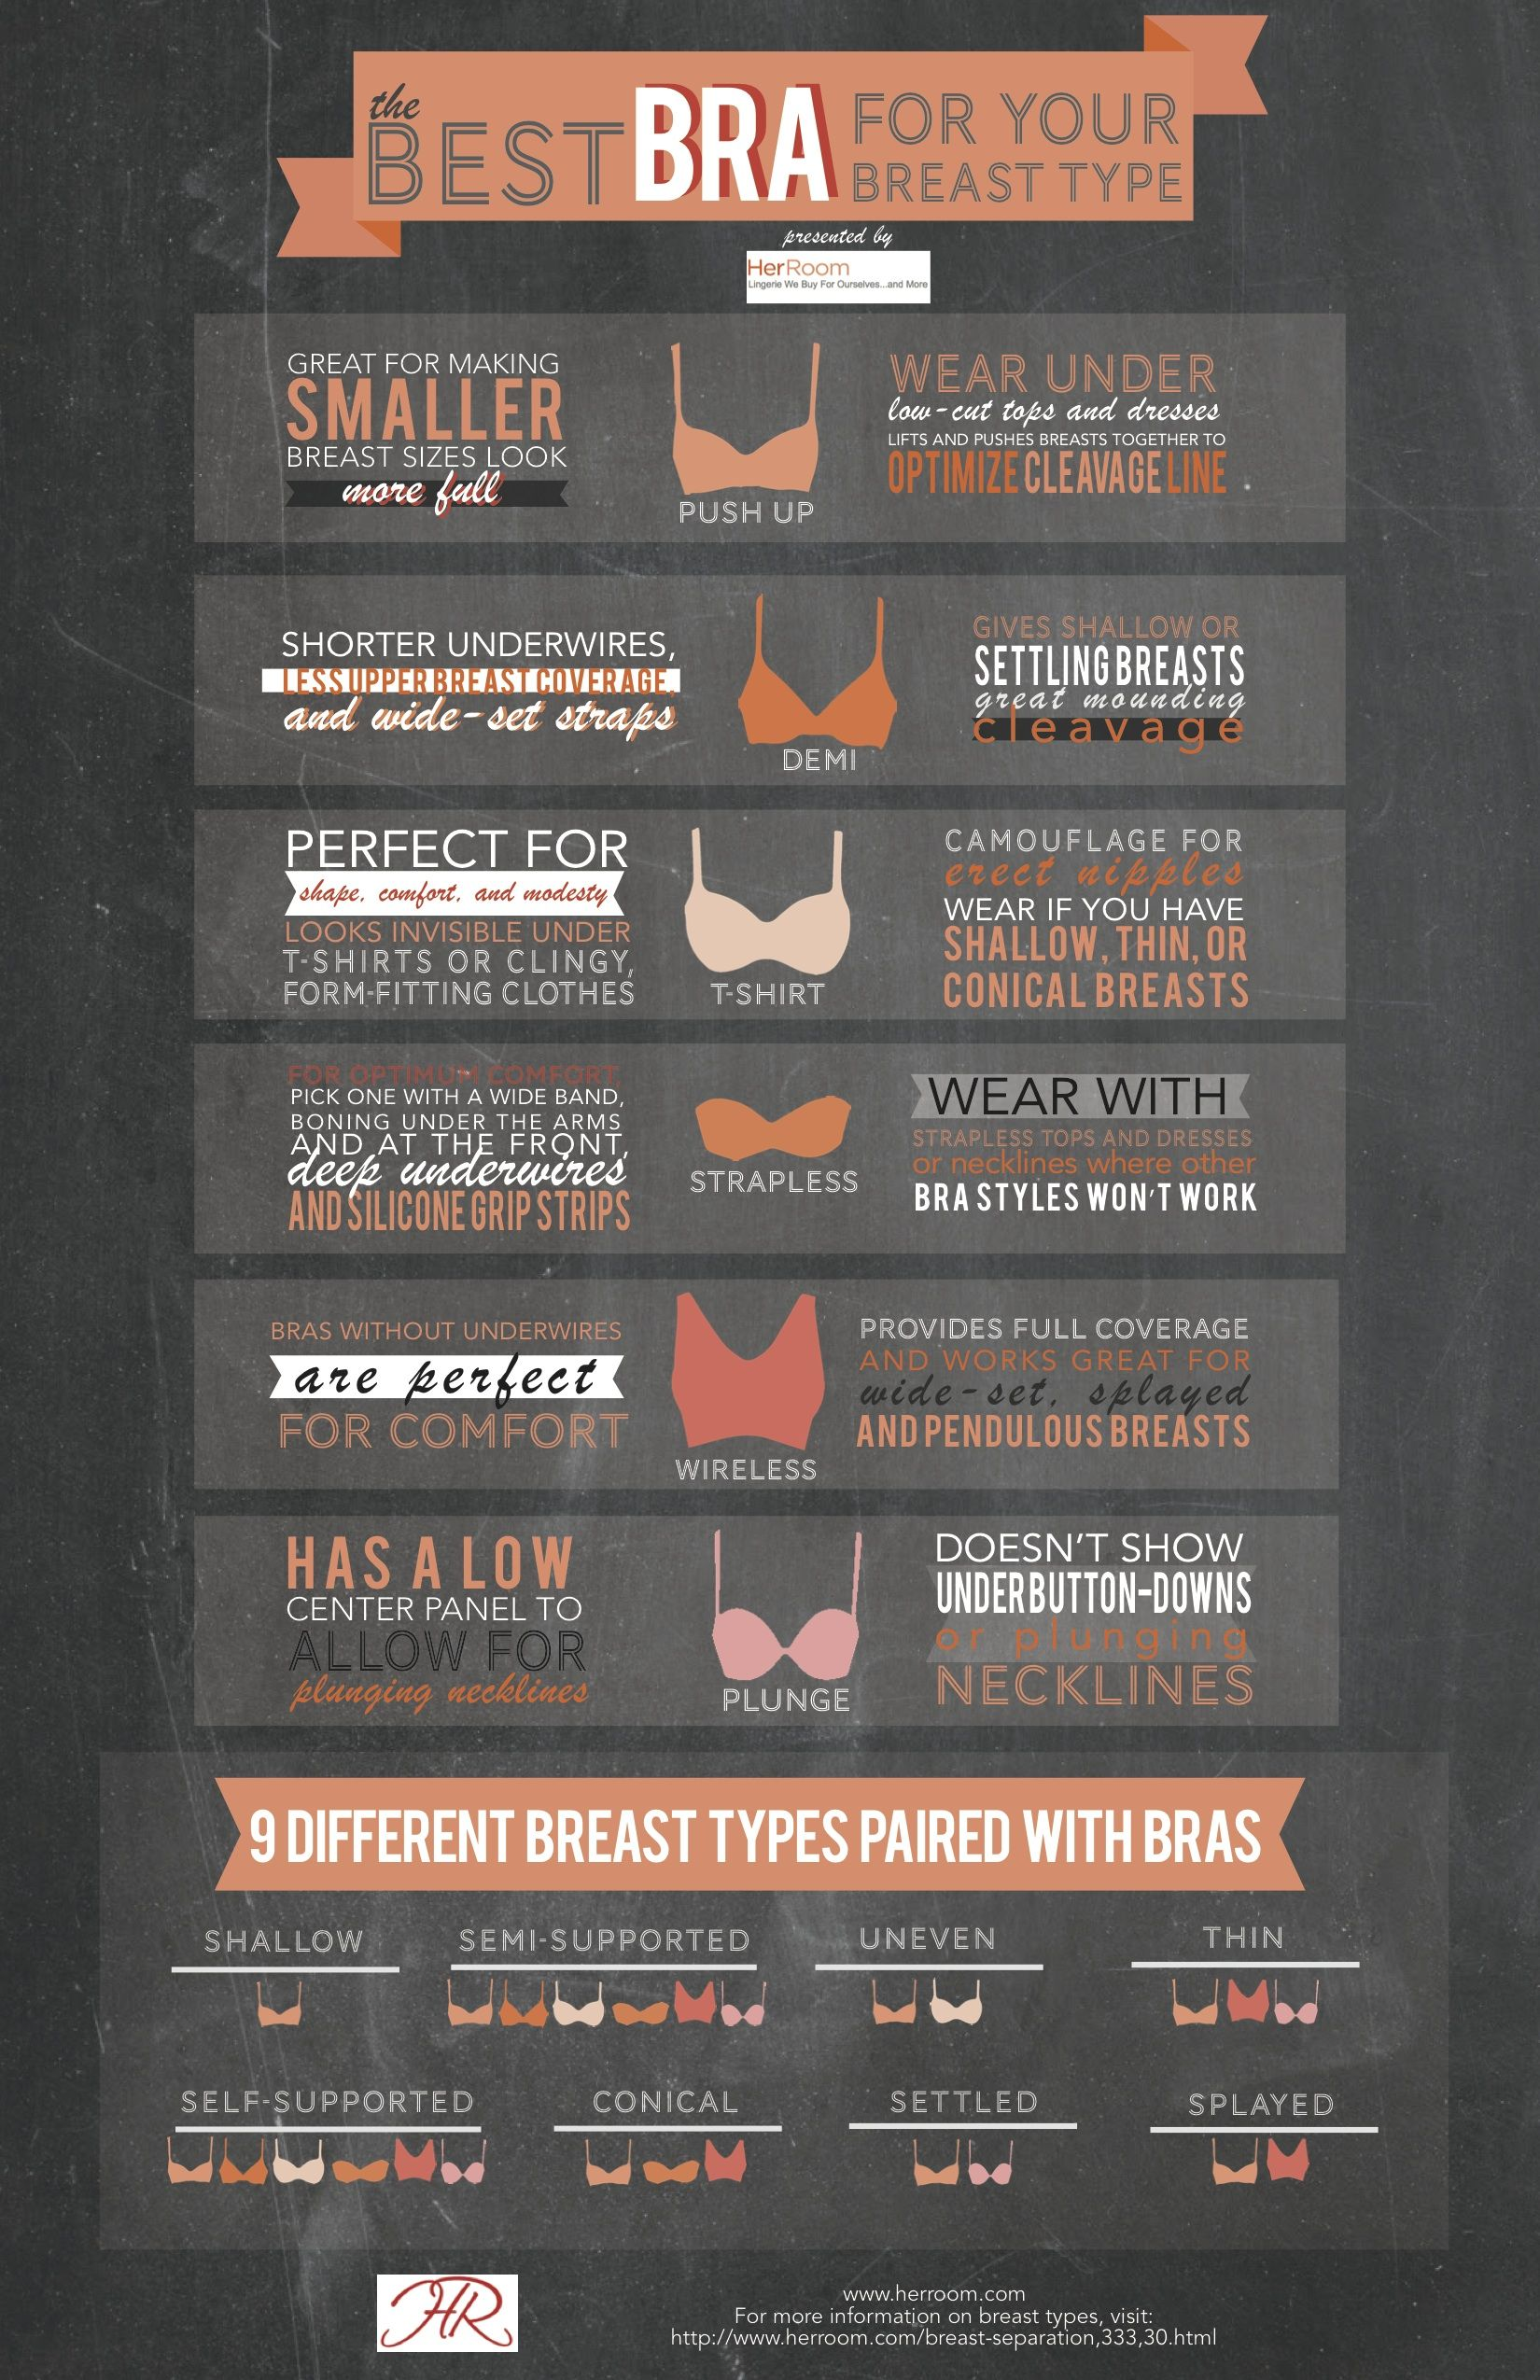 The Best Bra for Your Breast Type